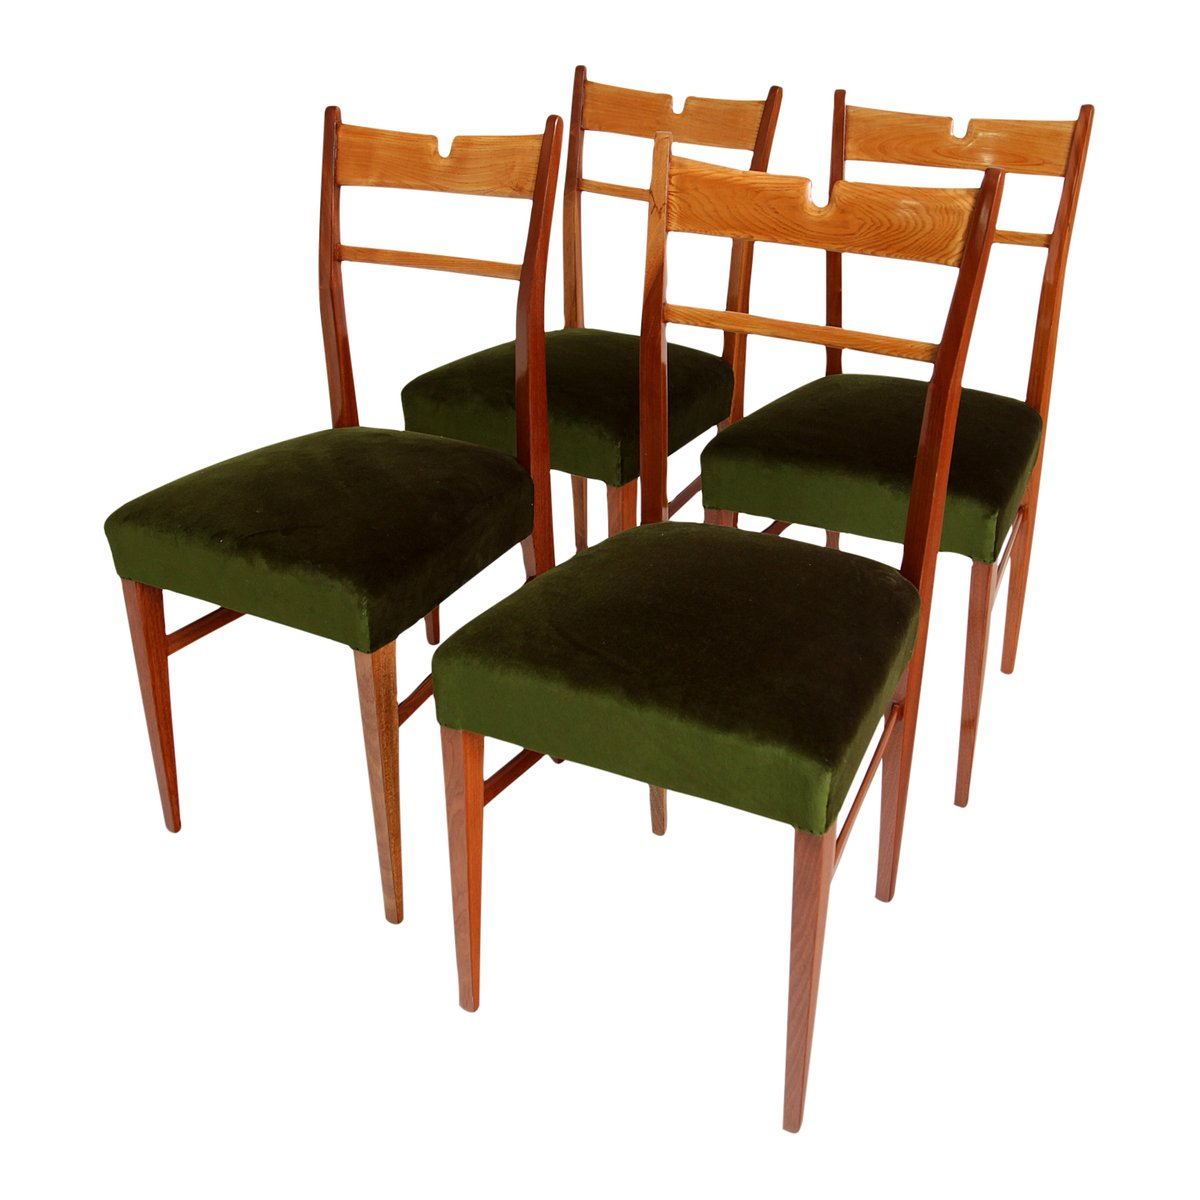 Green Velvet Dining Chairs Italian Wood And Green Velvet Dining Chairs 1950s Set Of 4